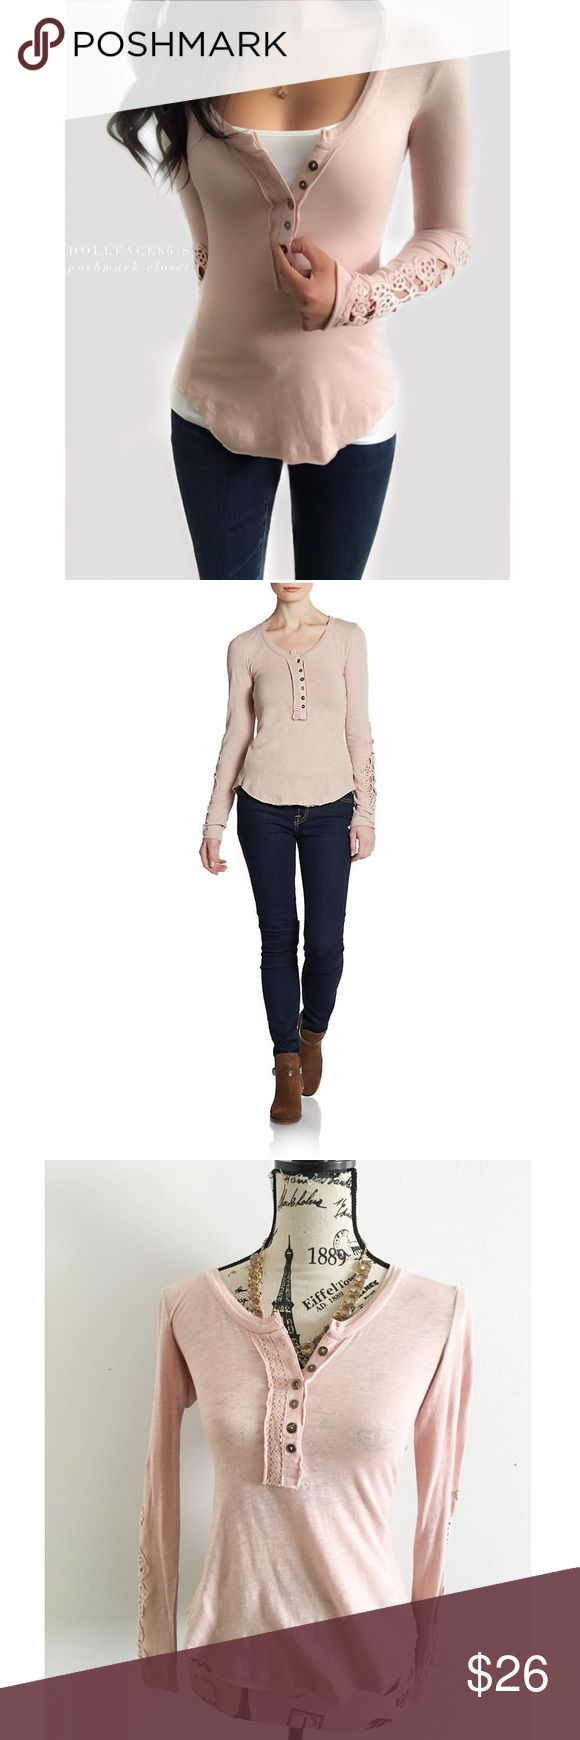 """Gray By Saks Fifth Avenue Lace Cuff Henley ✦ this cute Lilac colored henley top has lace cuffs with a cute parted style stitch in the back  ✦{I am not a professional photographer, actual color of item may vary ➾slightly from pics}  ❥chest:16"""" ❥waist:14"""" ❥length:22""""/25"""" ❥sleeves:25"""" ➳material/care:cotton/machine wash  ➳fit:true, but has stretch ➳condition:has a mended spot, no stains  ✦20% off bundles of 3/more items ✦No Trades  ✦NO HOLDS ✦No transactions outside Poshmark  ✦No lowball…"""